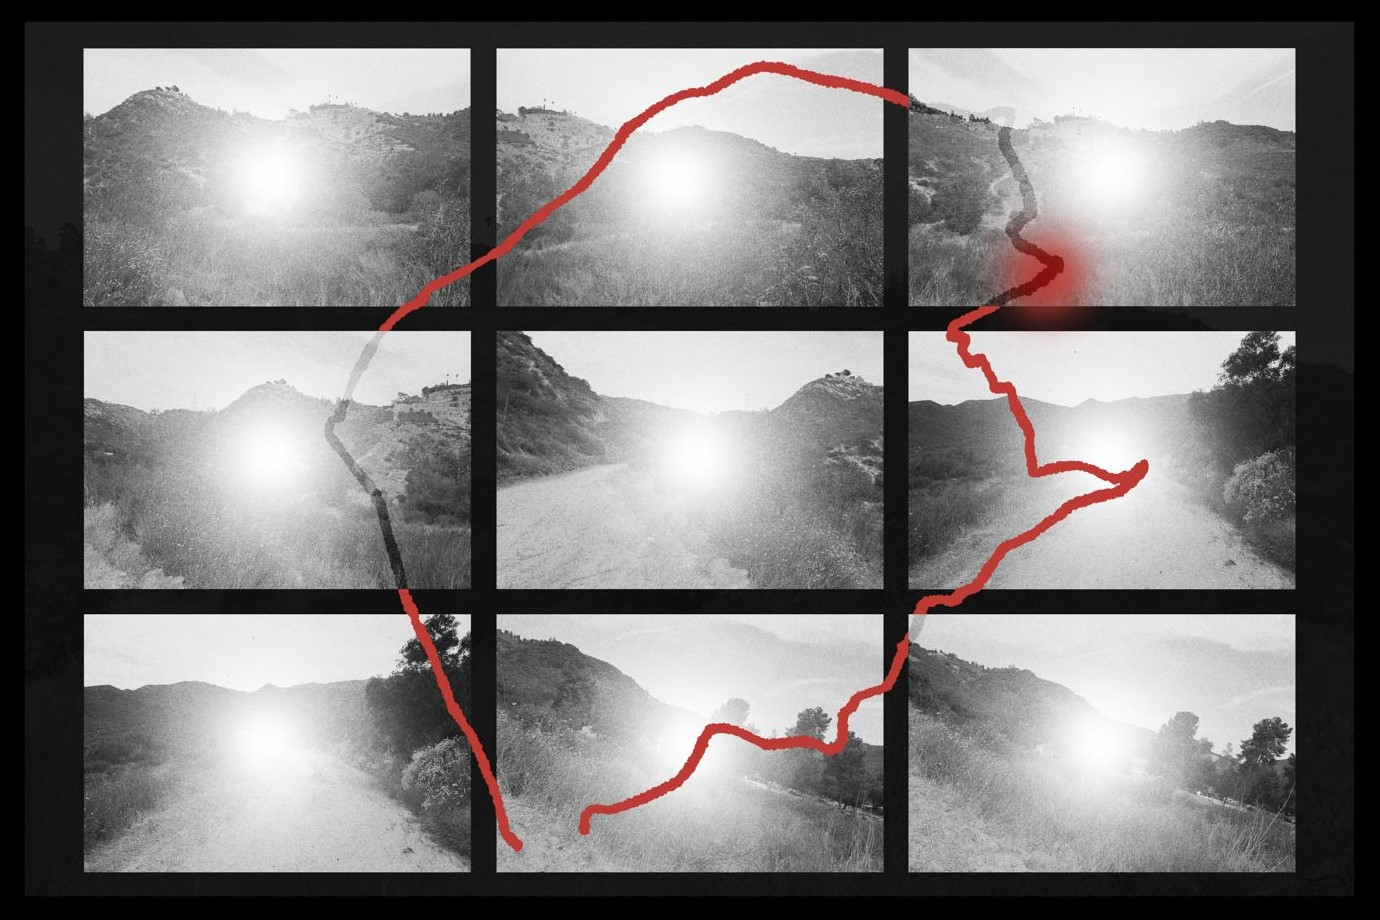 An illustration composed of nine black-and-white squares that include images of the Lippe Hike, overlaid with a red outline of the trail.